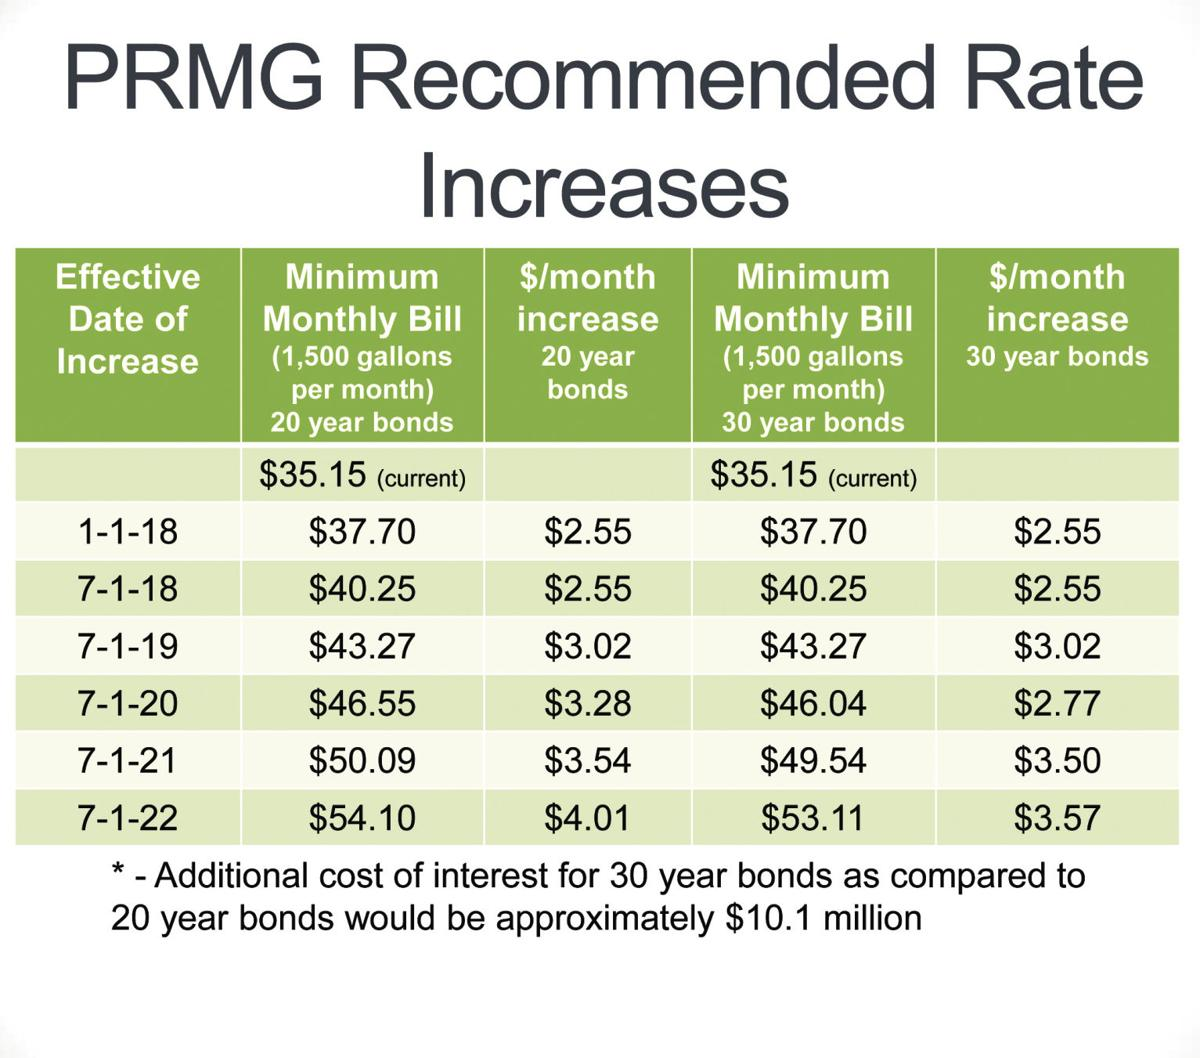 Recommended Rate Increases